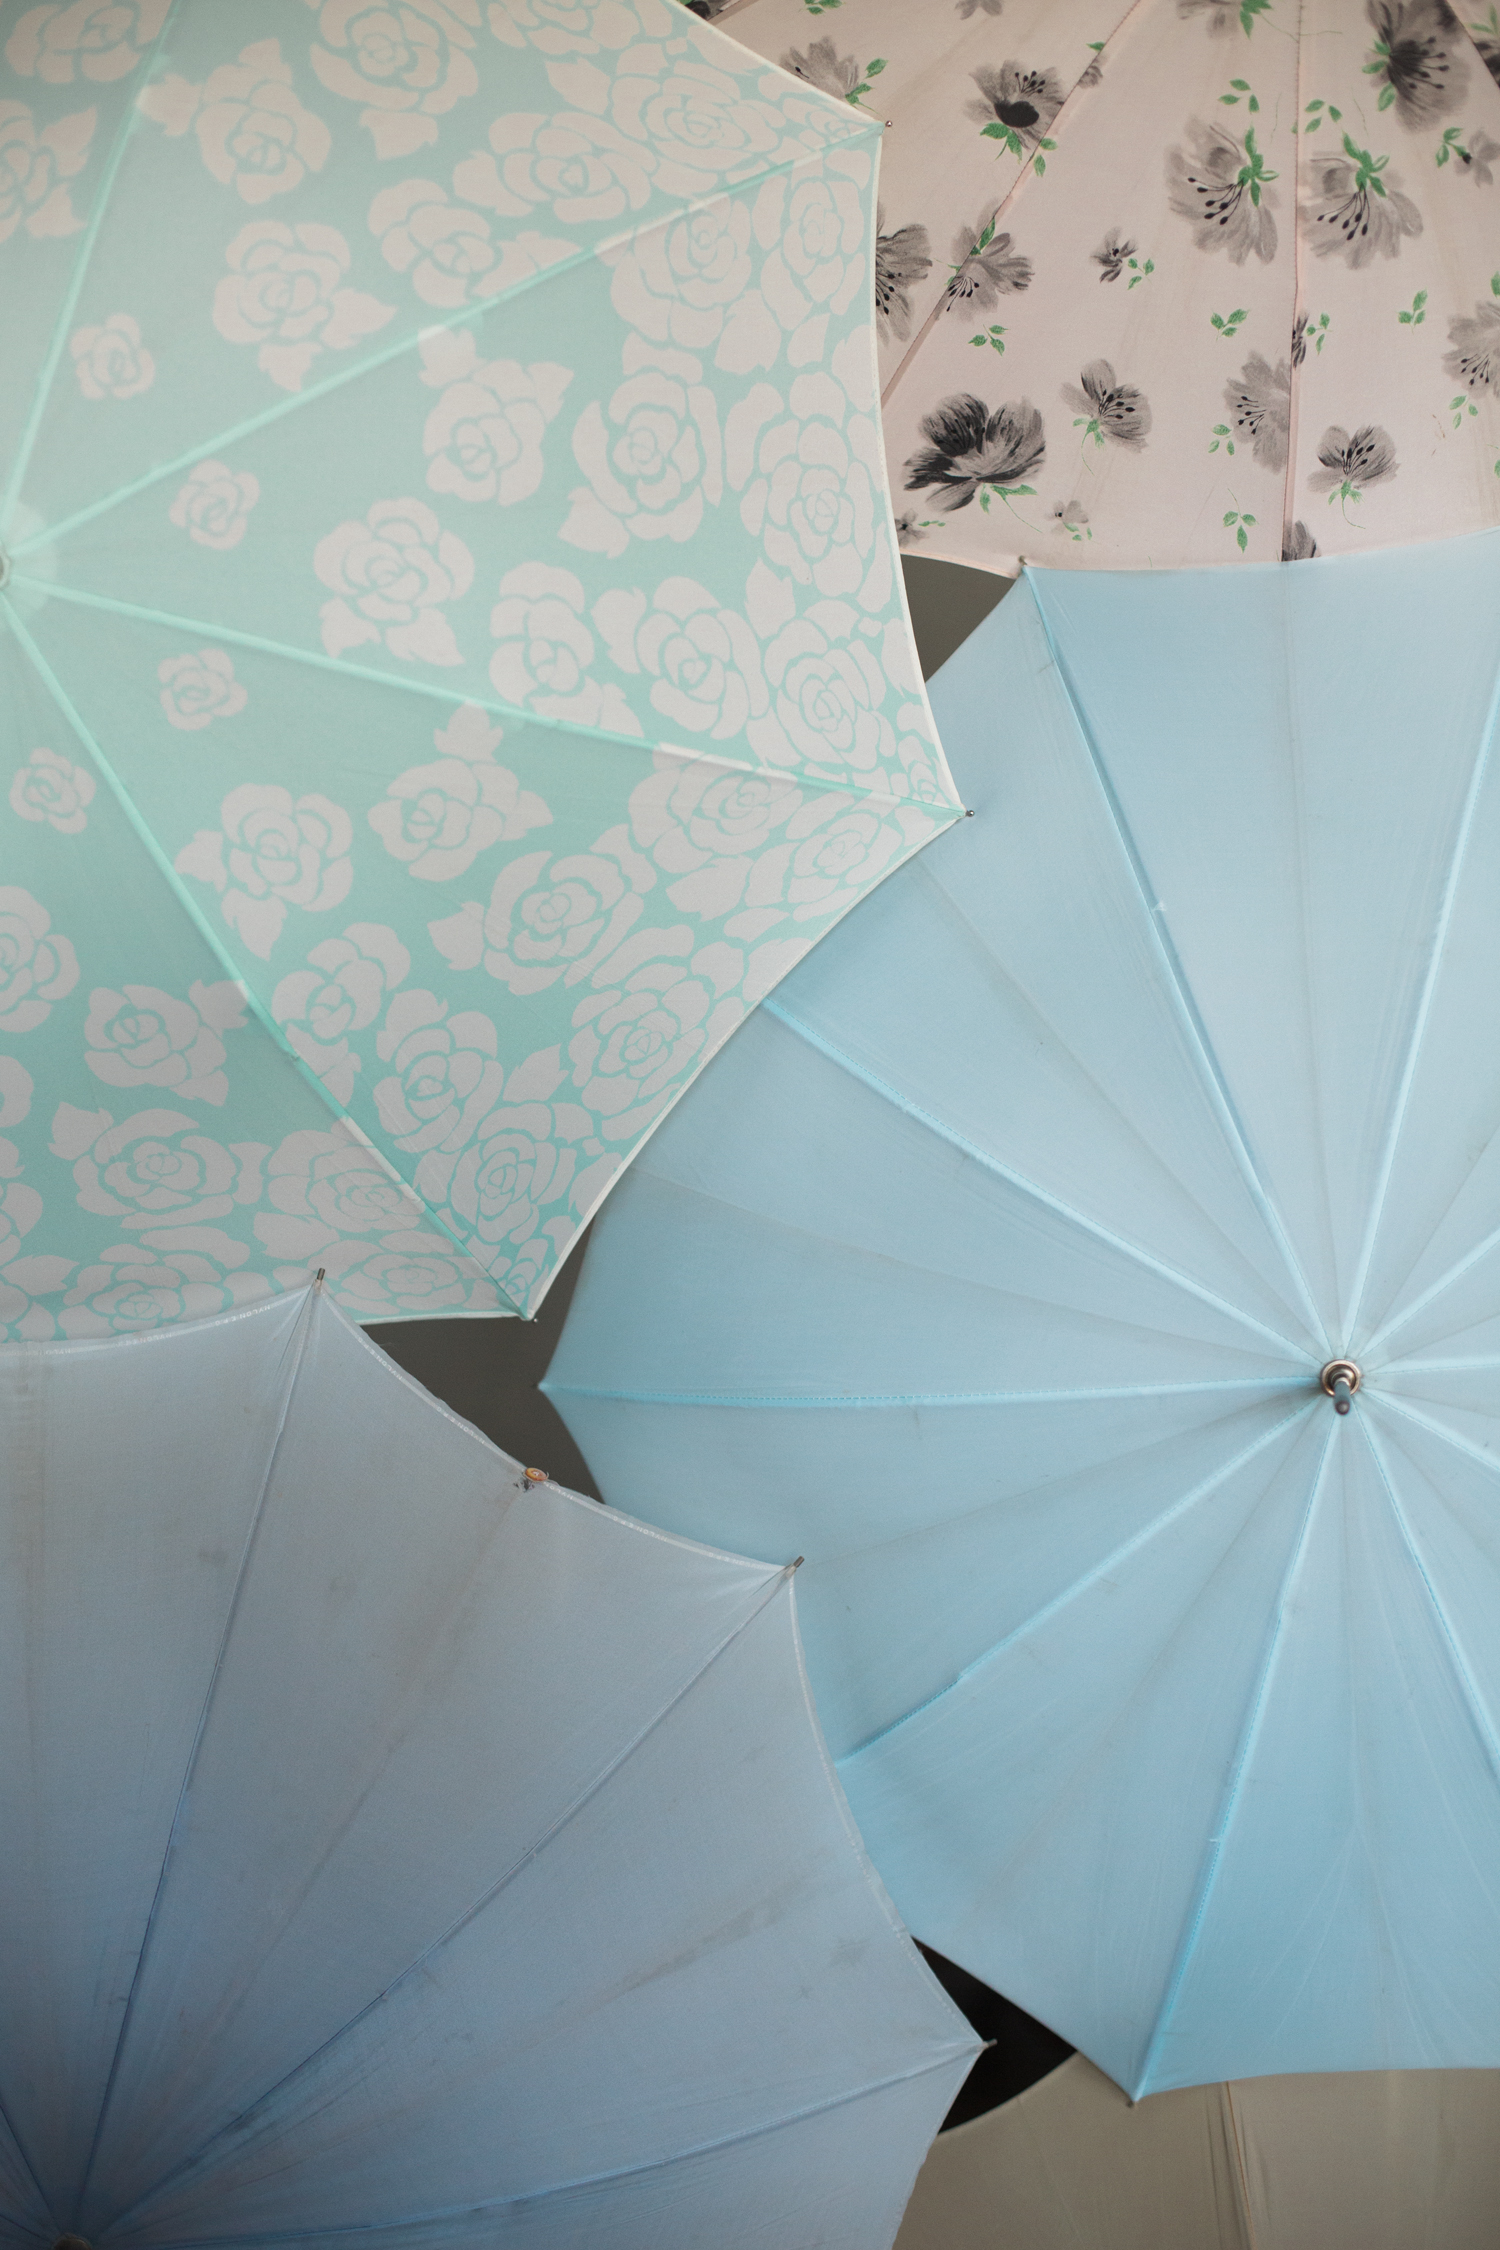 Bella Umbrella Vintage Collection For Rent | Alante Photography | Produced by Heather Sharpe of The Editor's Touch